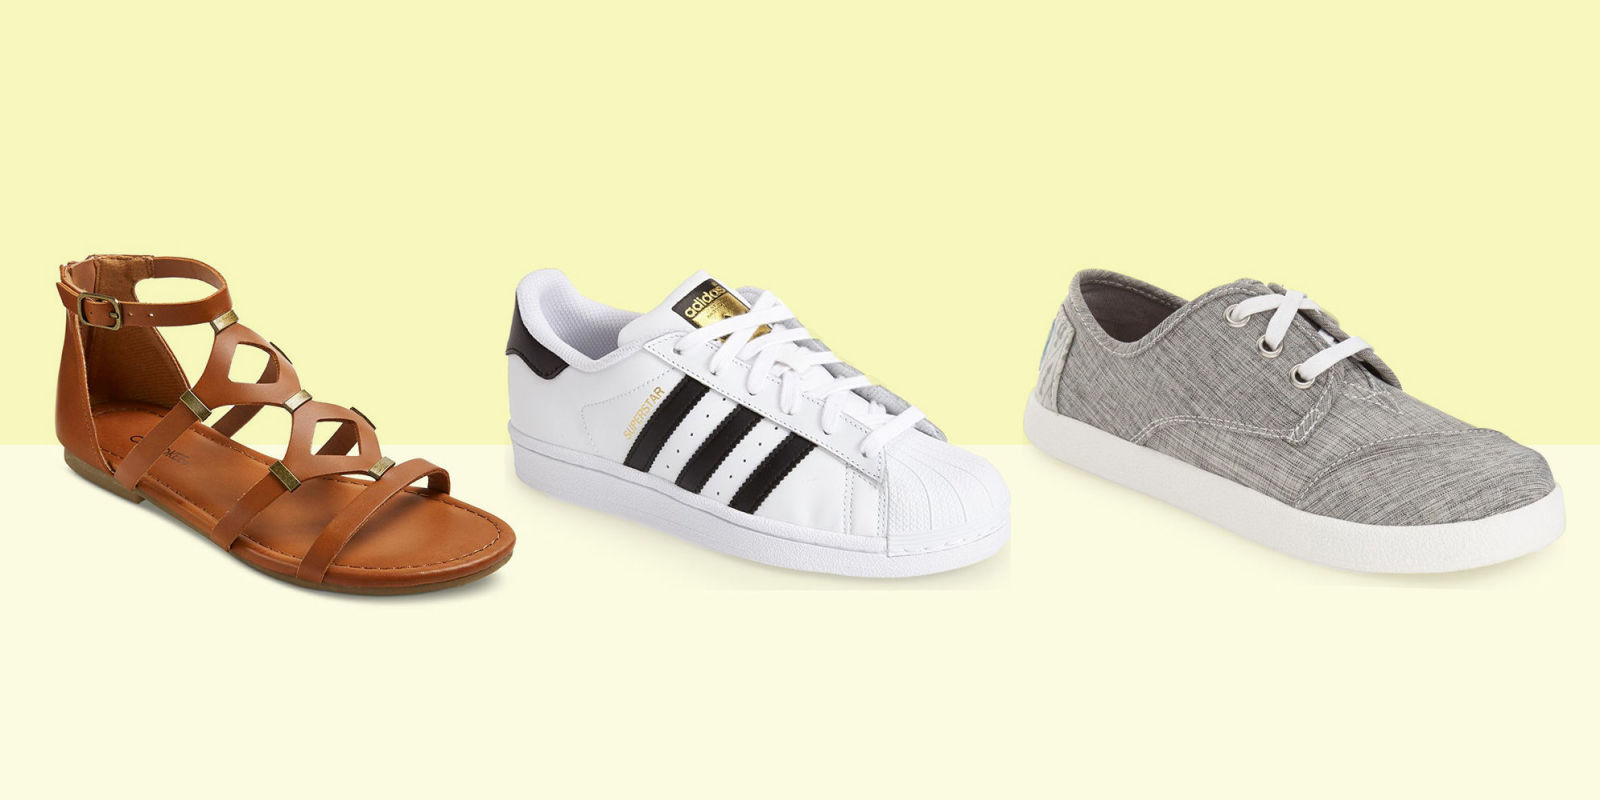 Prepare little feet on the go for any adventure with kids' shoes, sneakers, and more from Stride Rite. Give your kiddos the protection and comfort they need for every developmental stage. Our full collection of shoes for kids provides the stability and support for growing and developing feet, while remaining comfortable for miles of playtime.